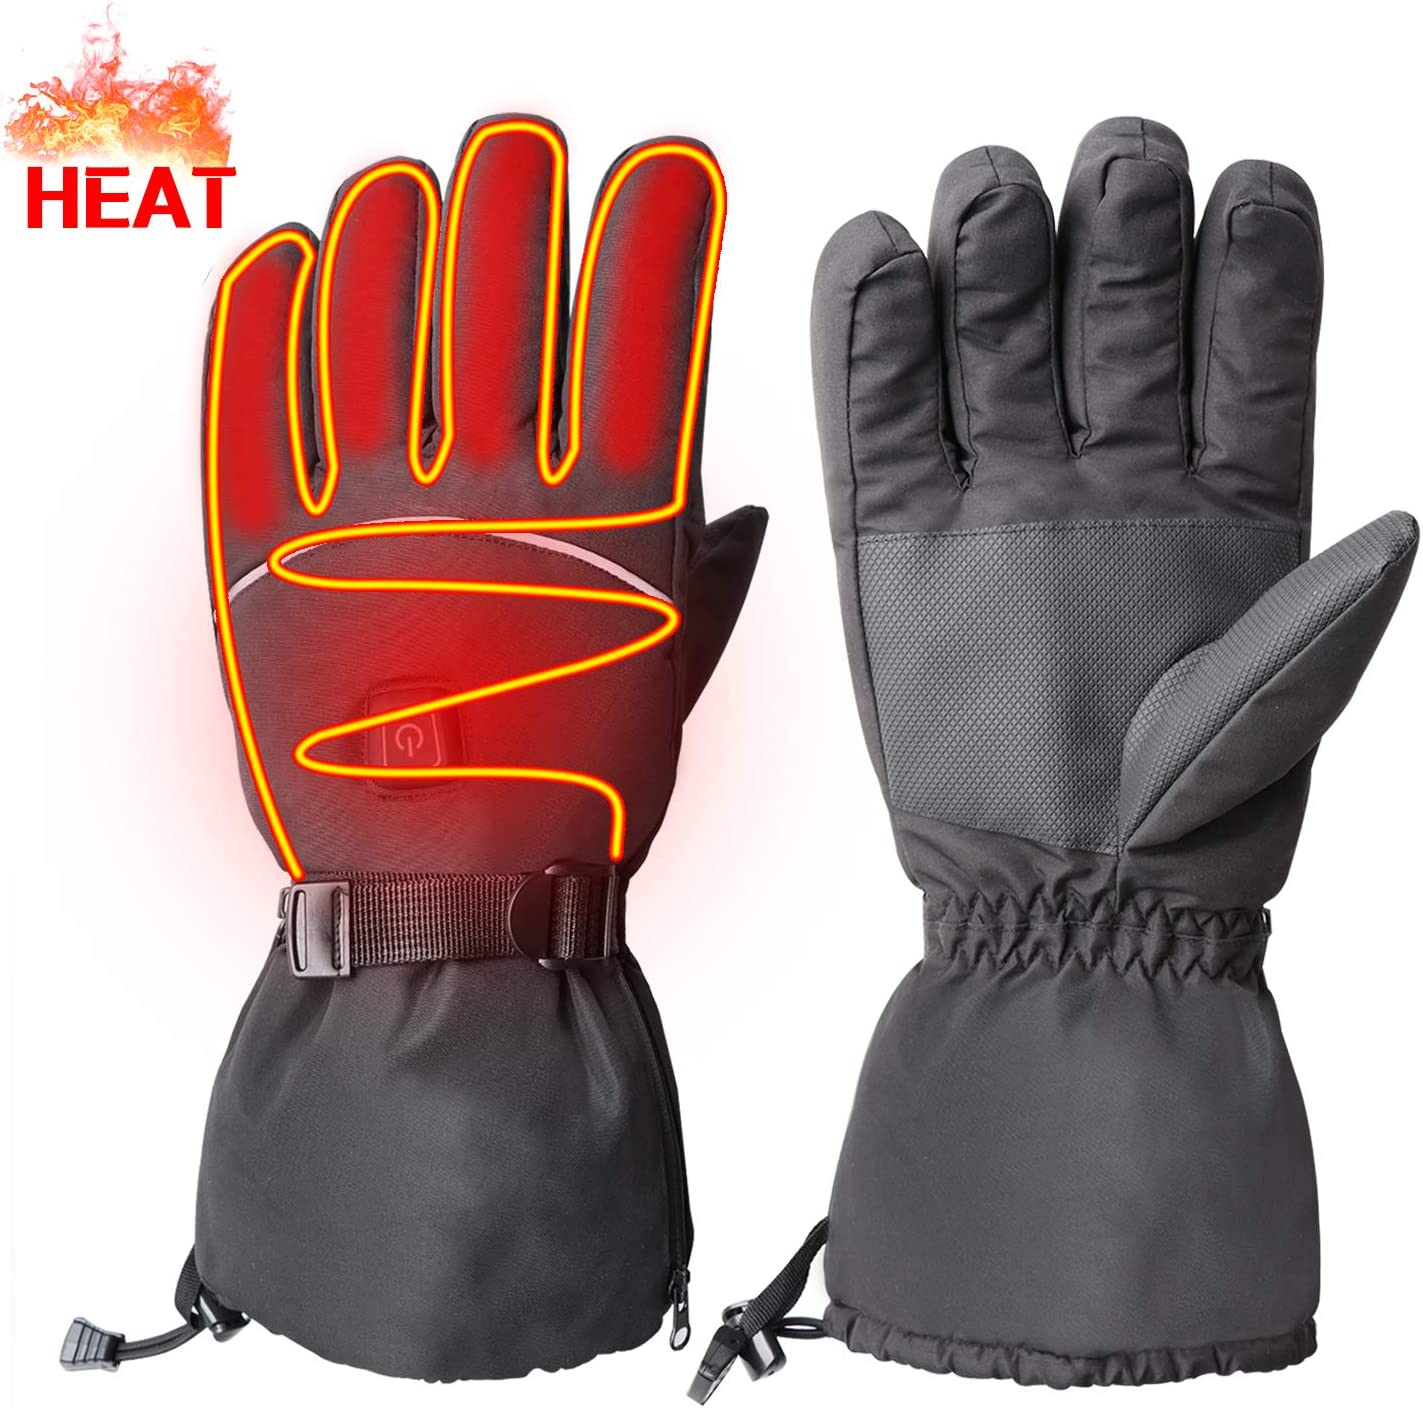 GMAYOO Electric Heated Gloves for Men Women, 3 Levels Temperature Control Thermal Gloves Hand Warmer for Hiking Skiing Cycling Hunting